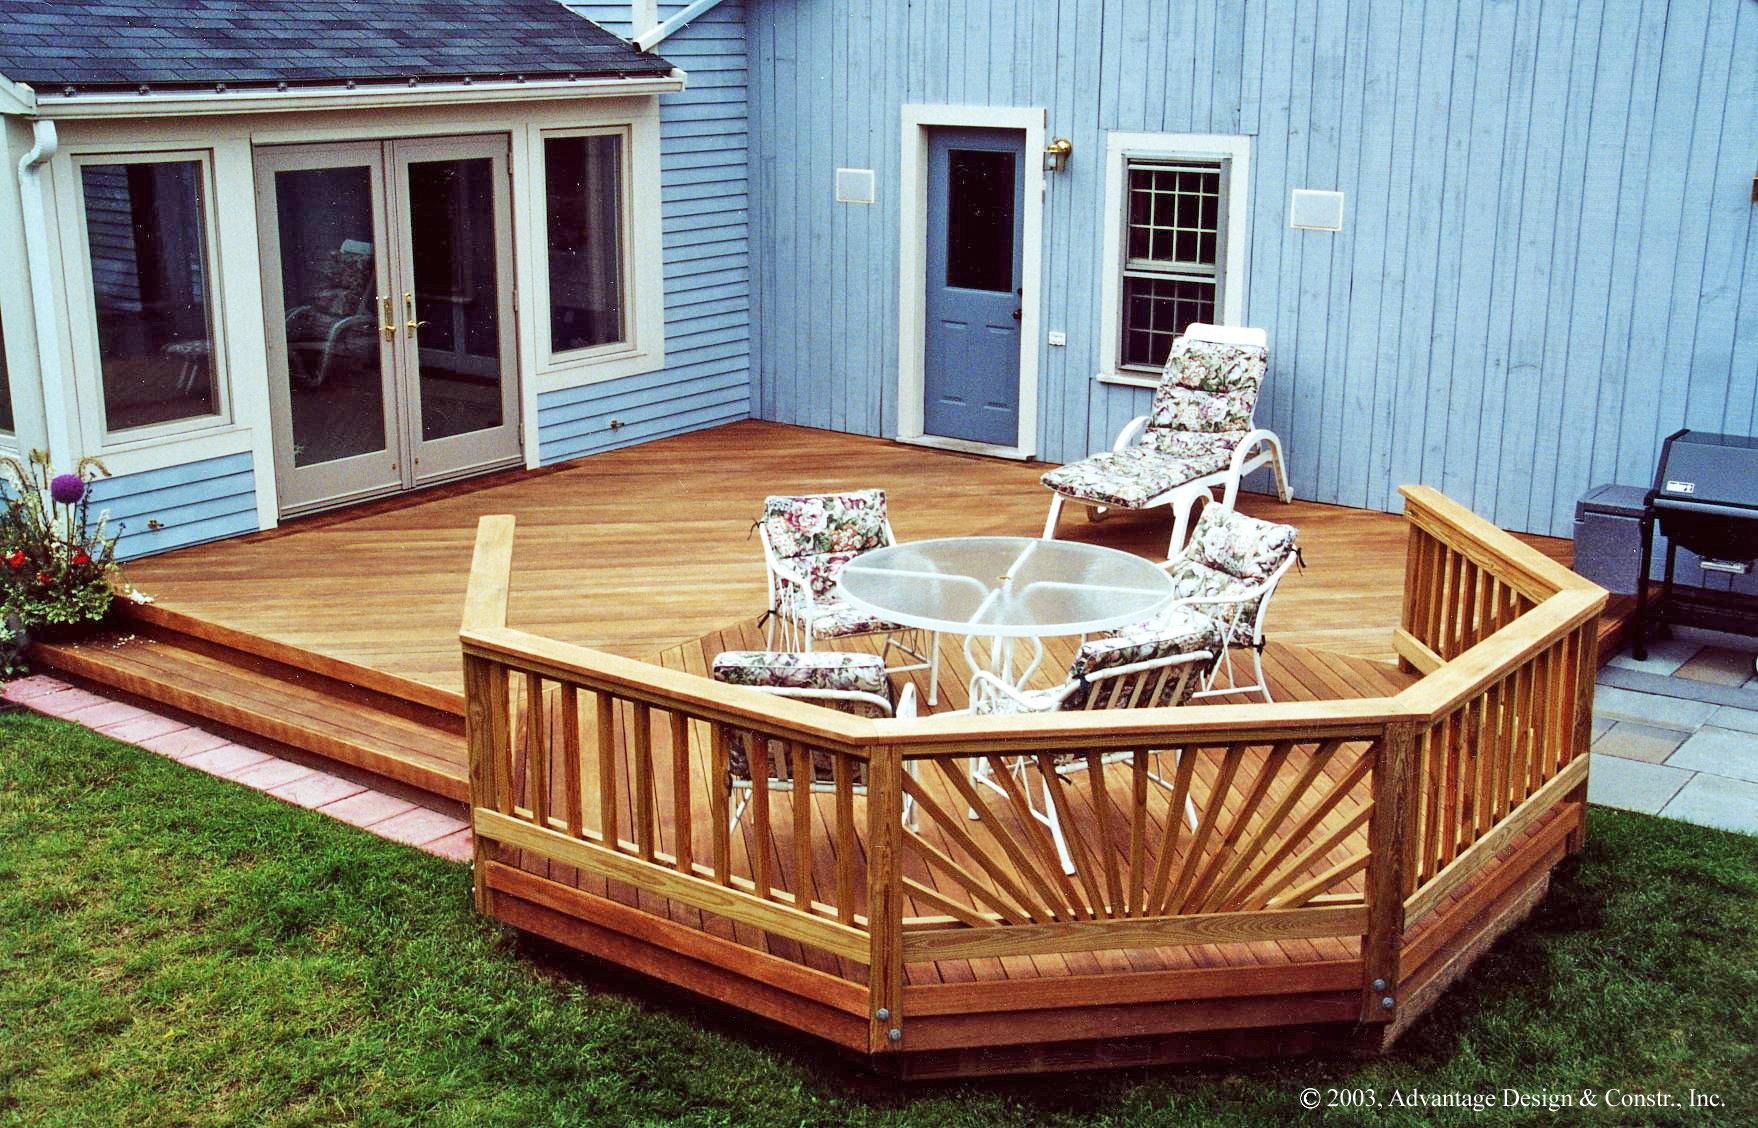 Choosing a deck or a patio suburban boston decks and for Deck blueprints